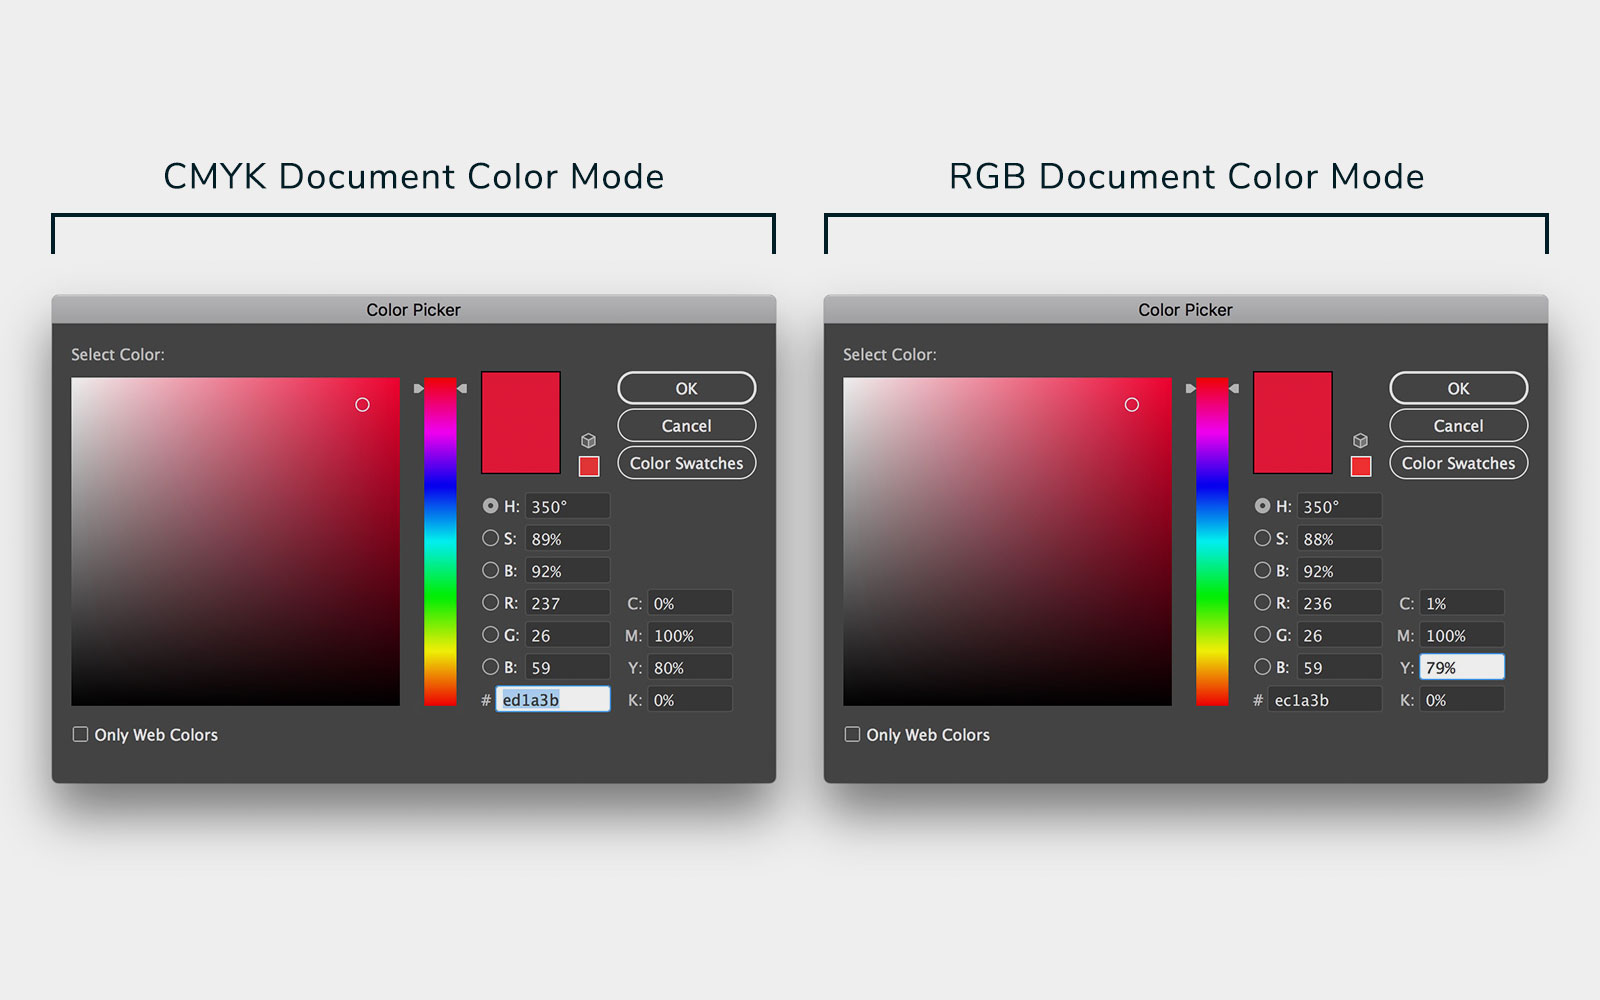 Comparison of the same color in CMYK color mode and RGB color mode